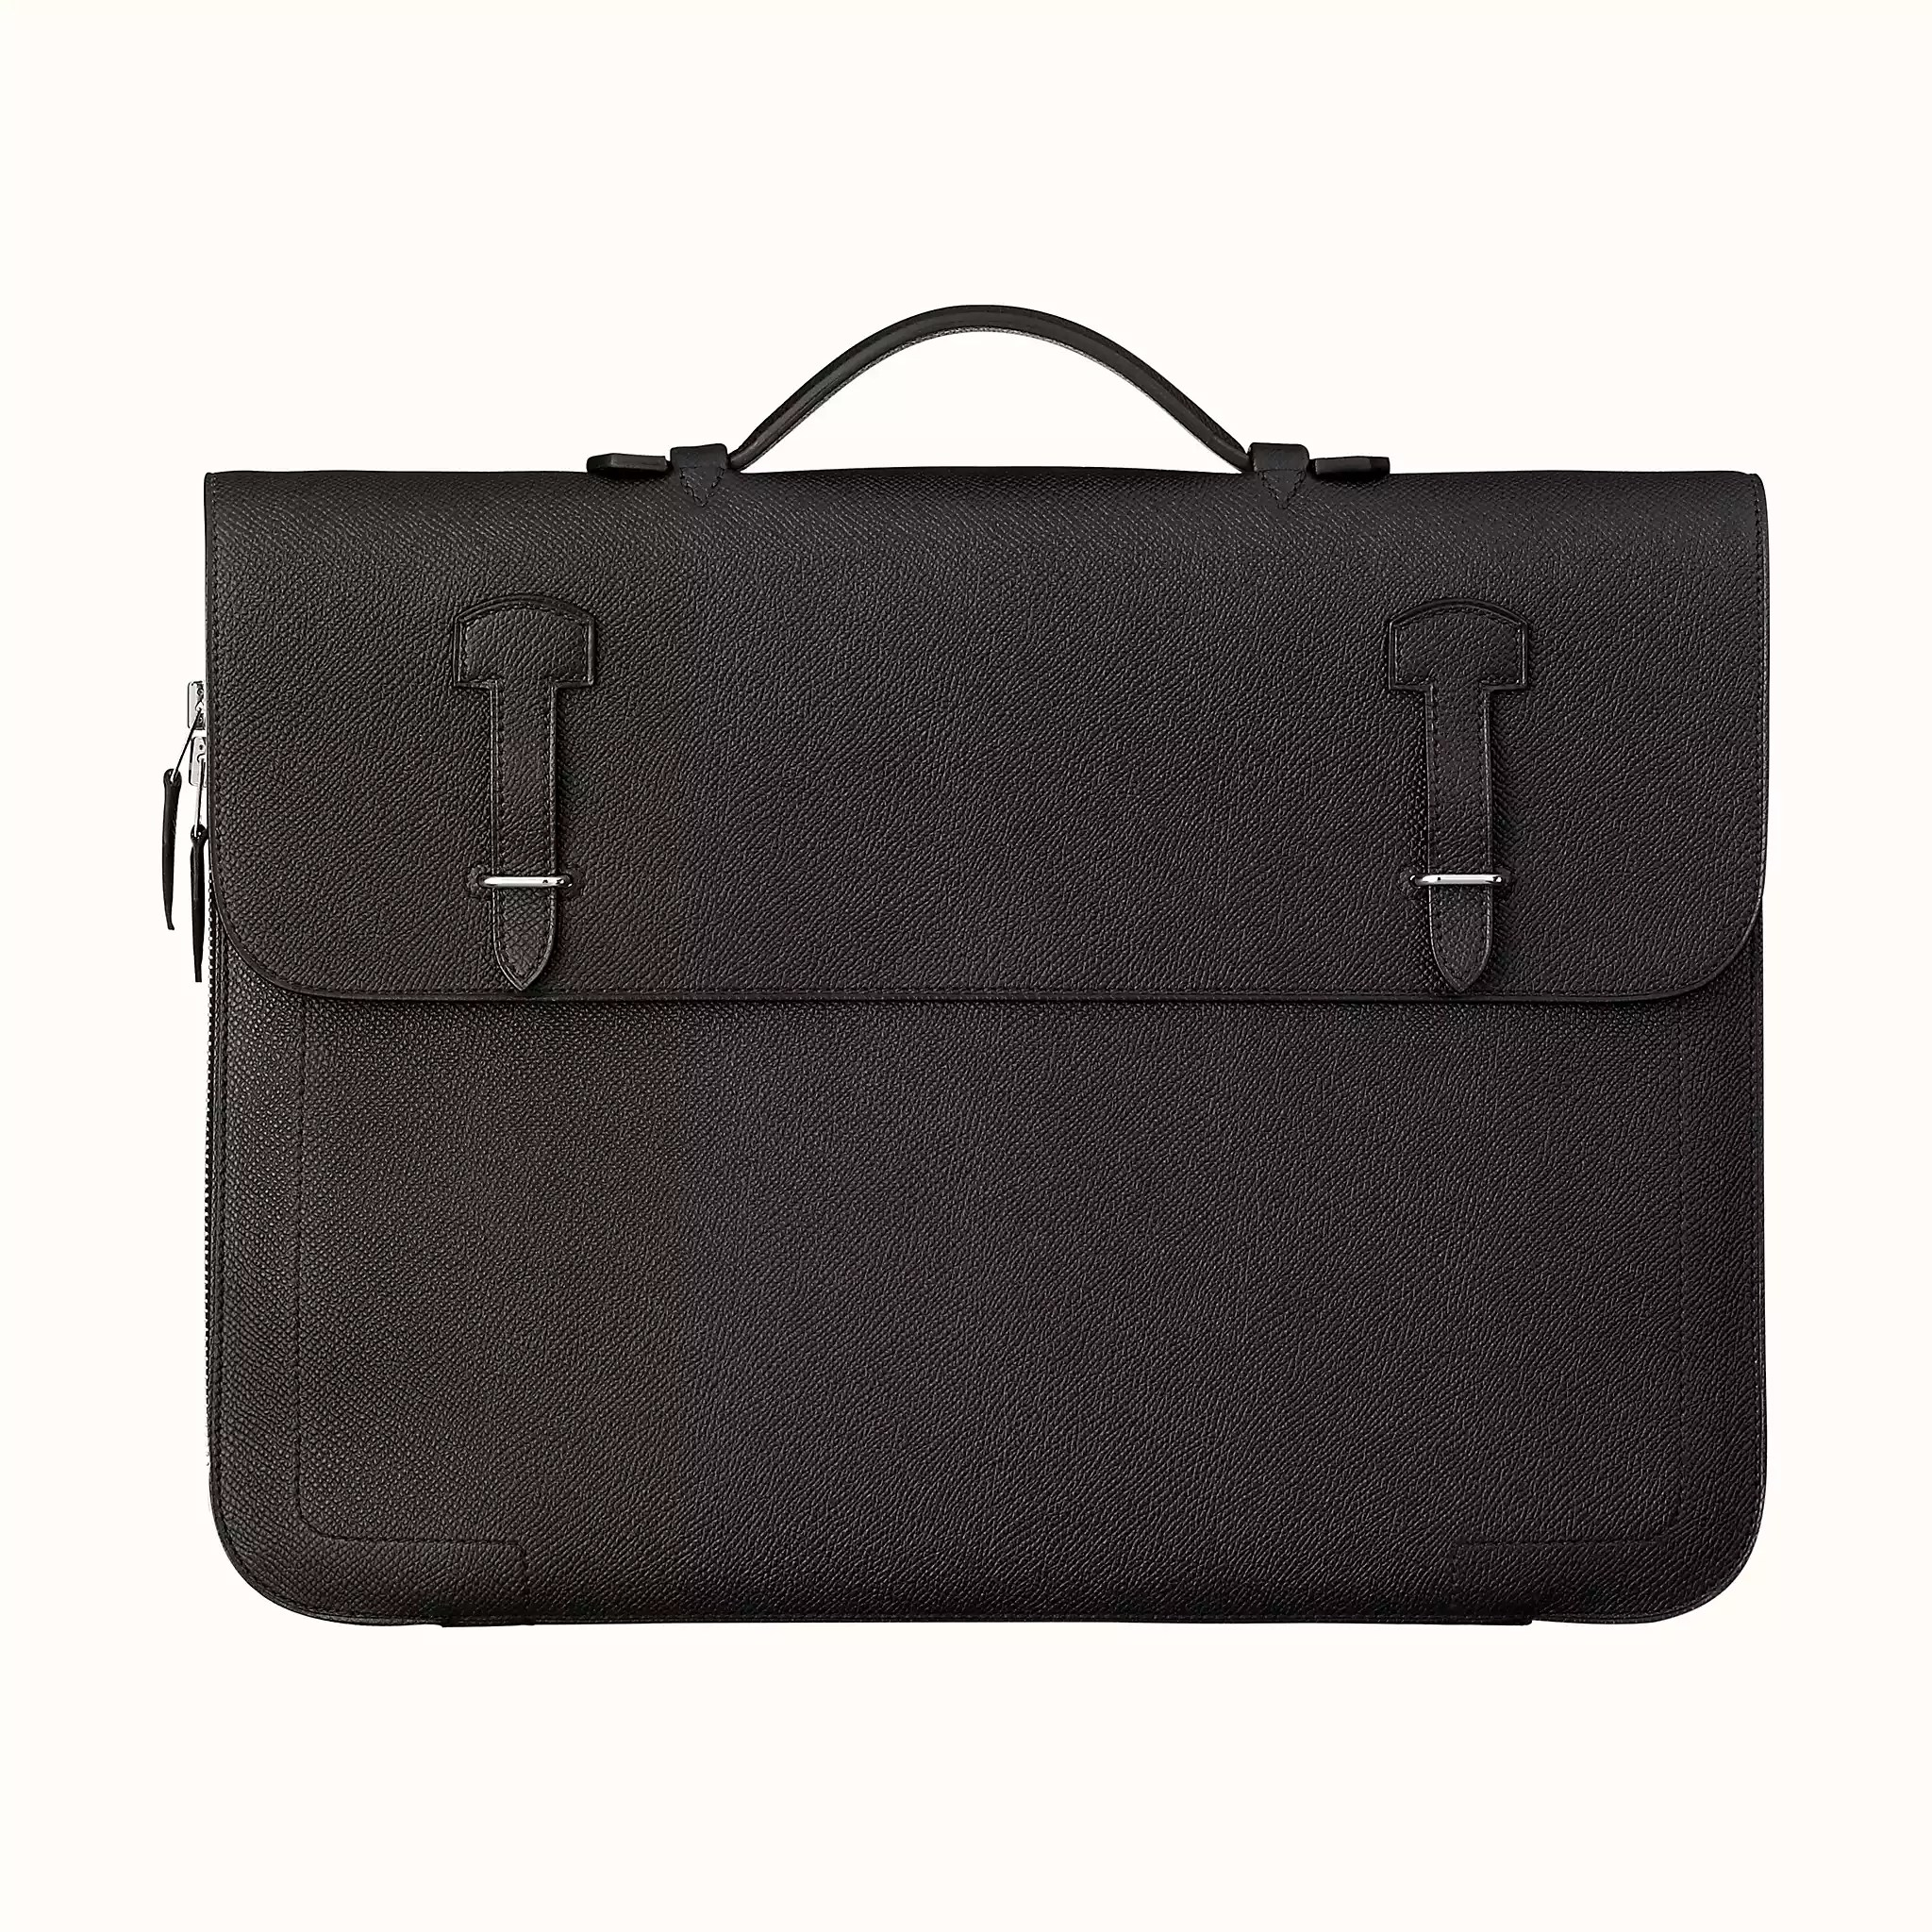 Serviette Portugal Serviette 57 Briefcase